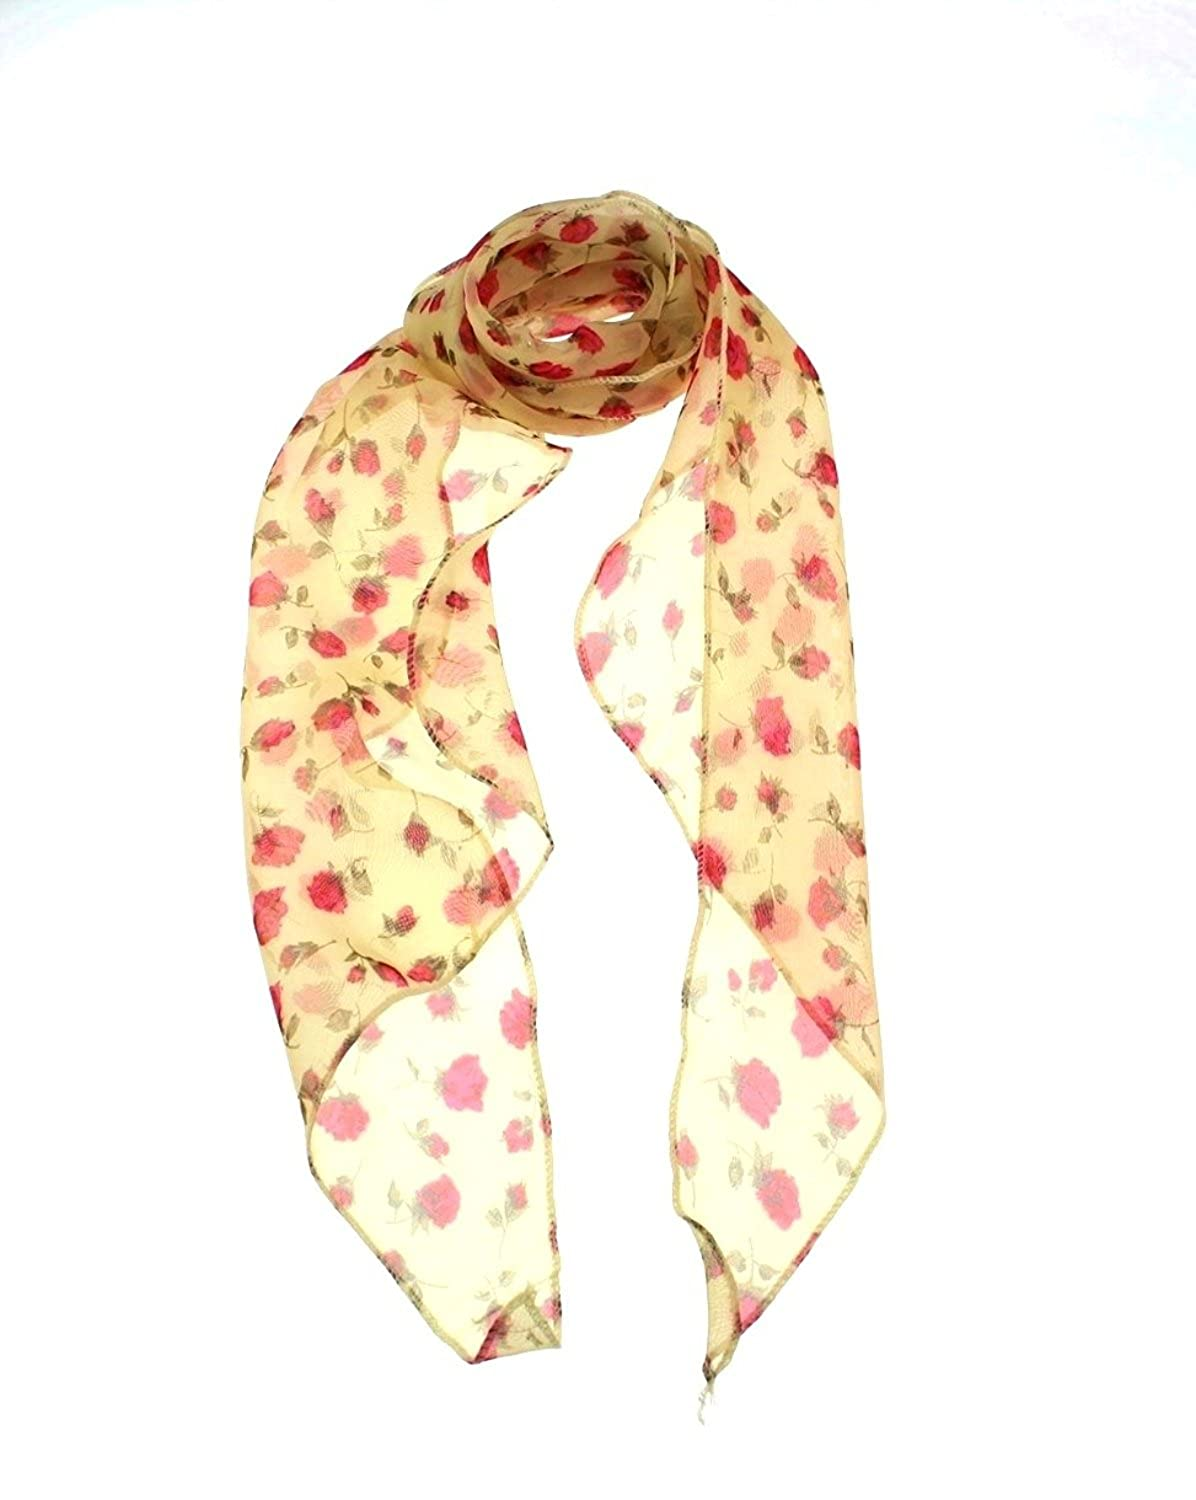 Zac's Alter Ego Women's 3 In 1 Patterned Sash Scarf/ Head Scarf/ Neck Scarf